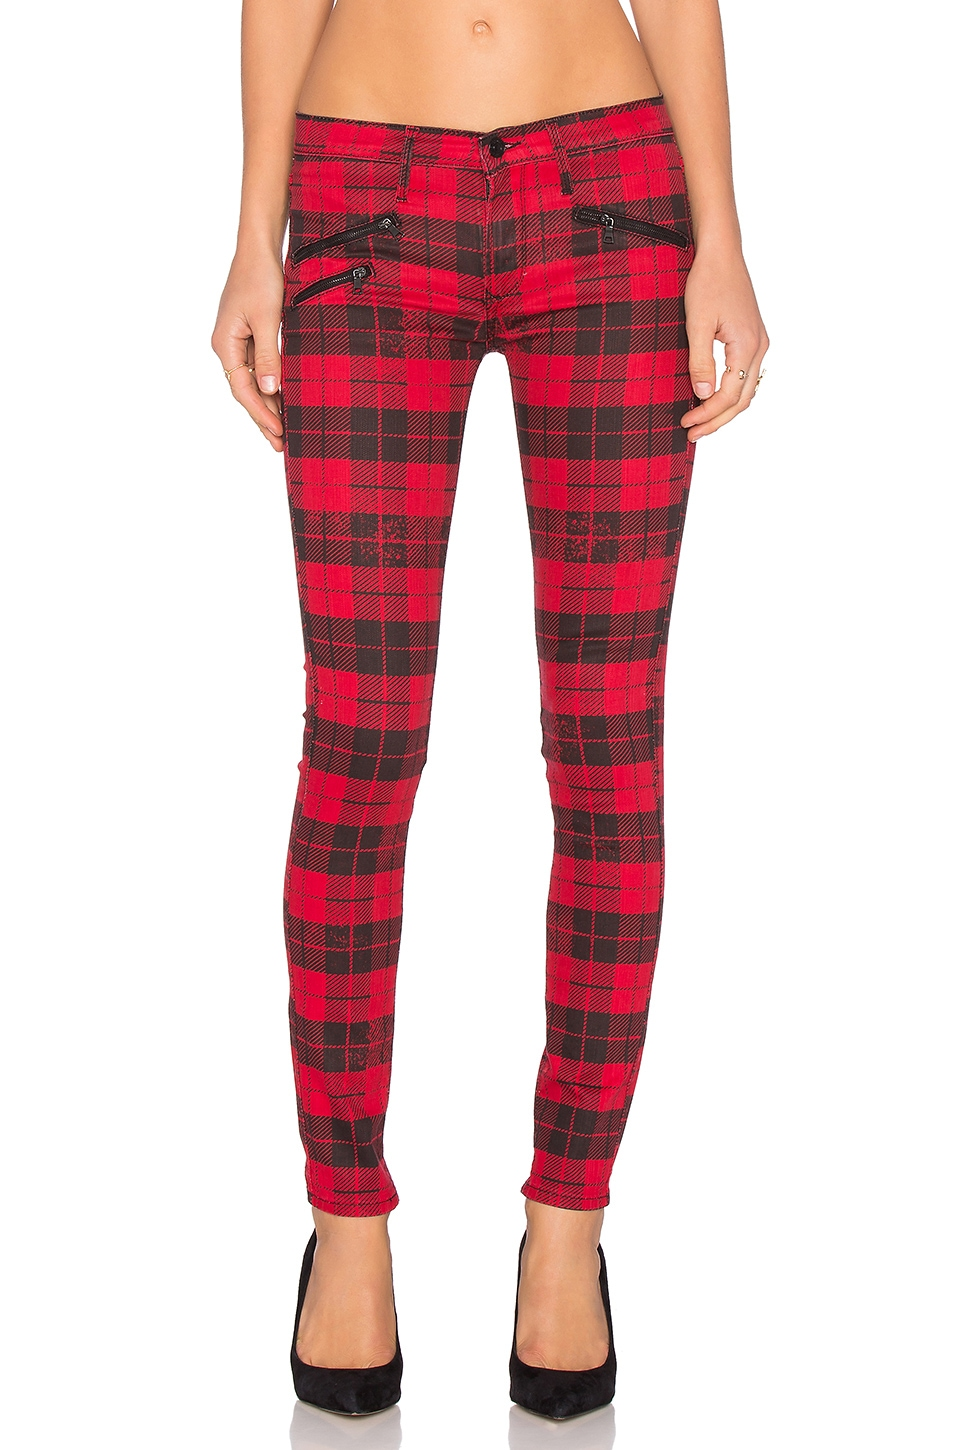 Black Orchid Billie Zipper Skinny in Mad Fox Plaid